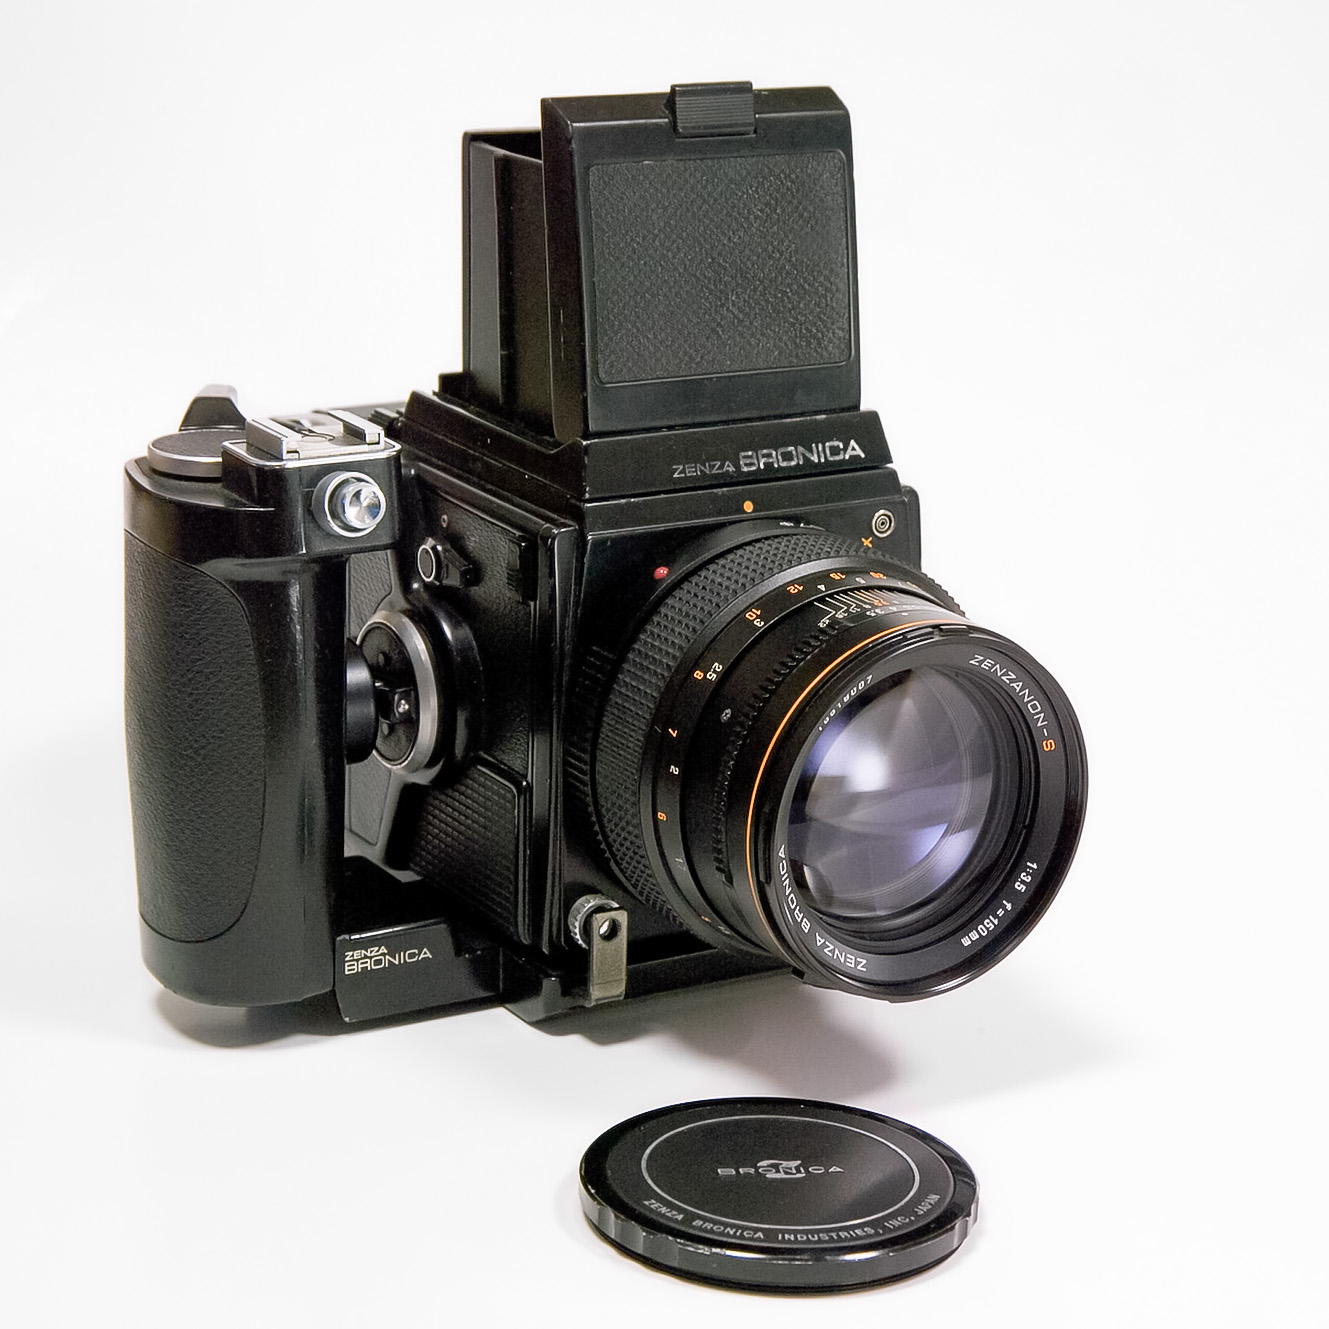 File:Bronica SQ M3355.jpg - Wikipedia, the free encyclopedia